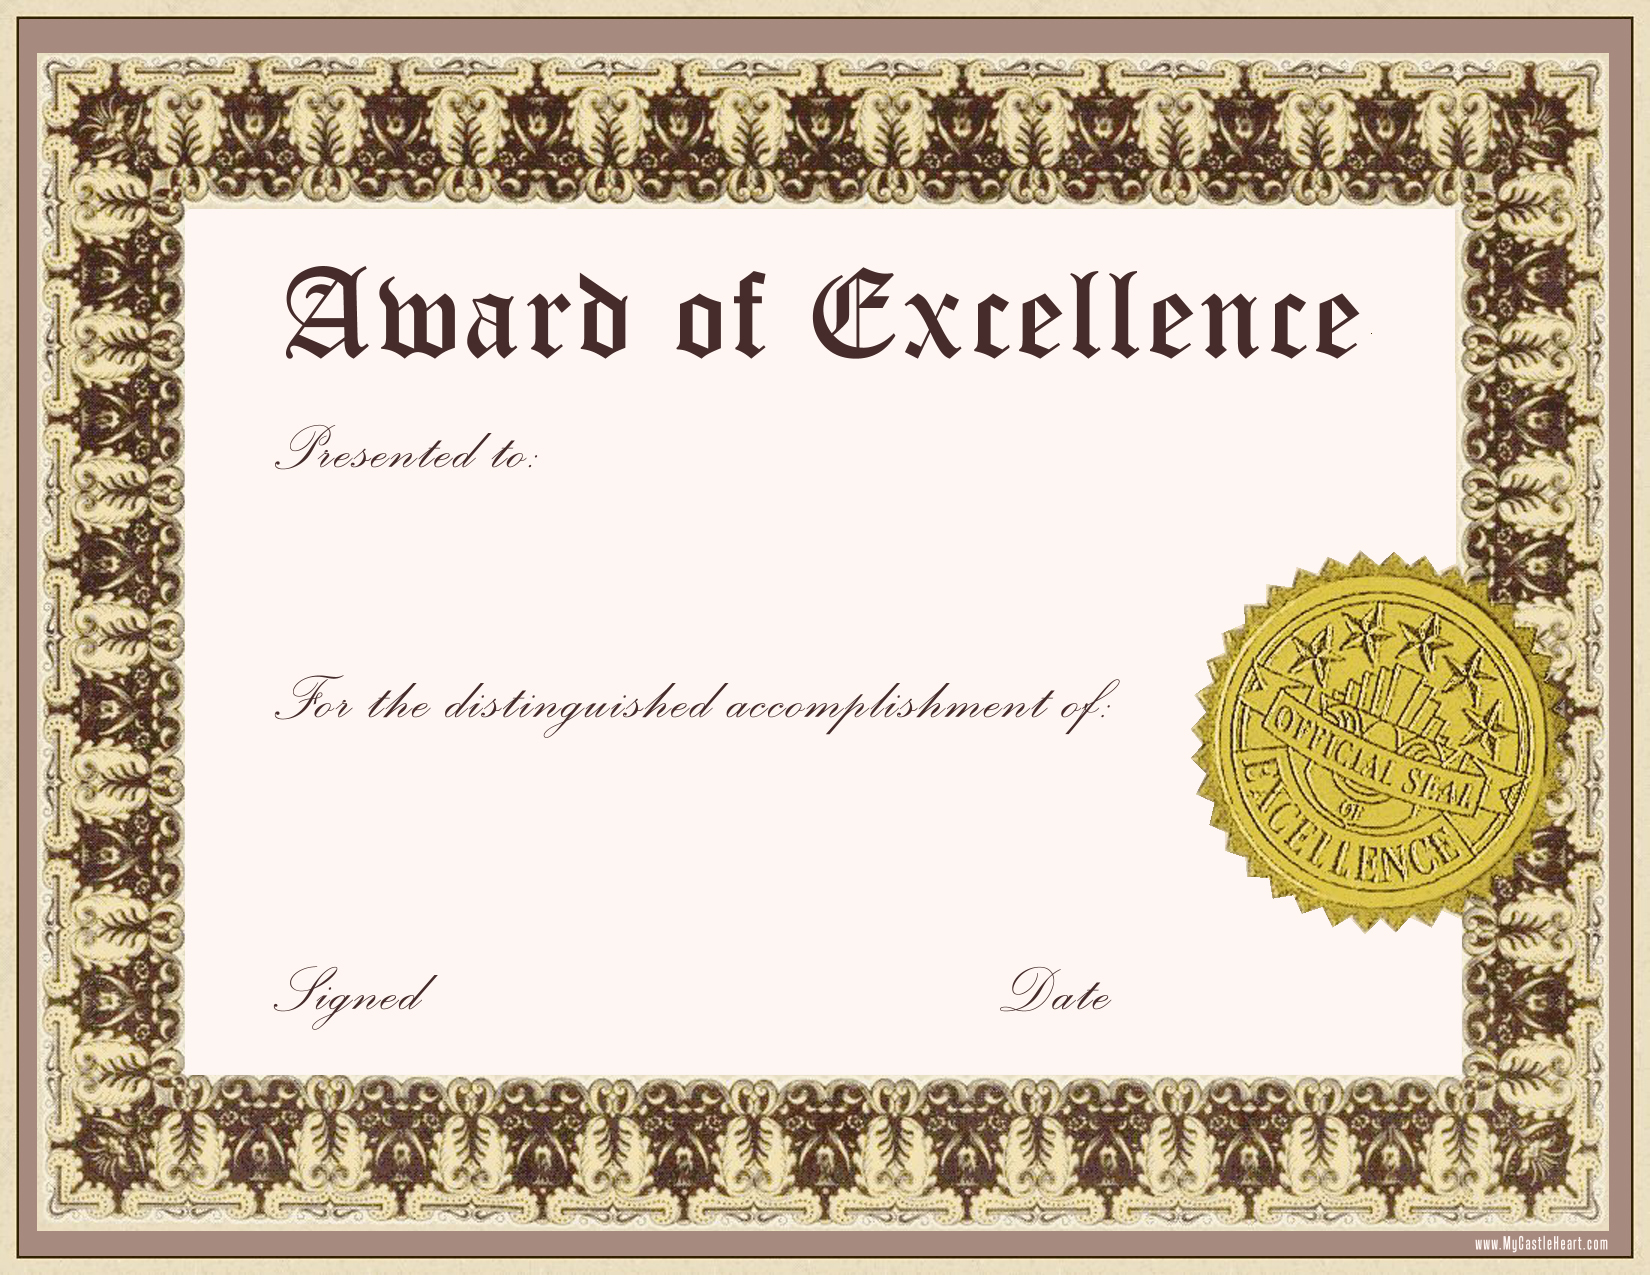 Pin Award Certificate Template on Pinterest el3KMiFe